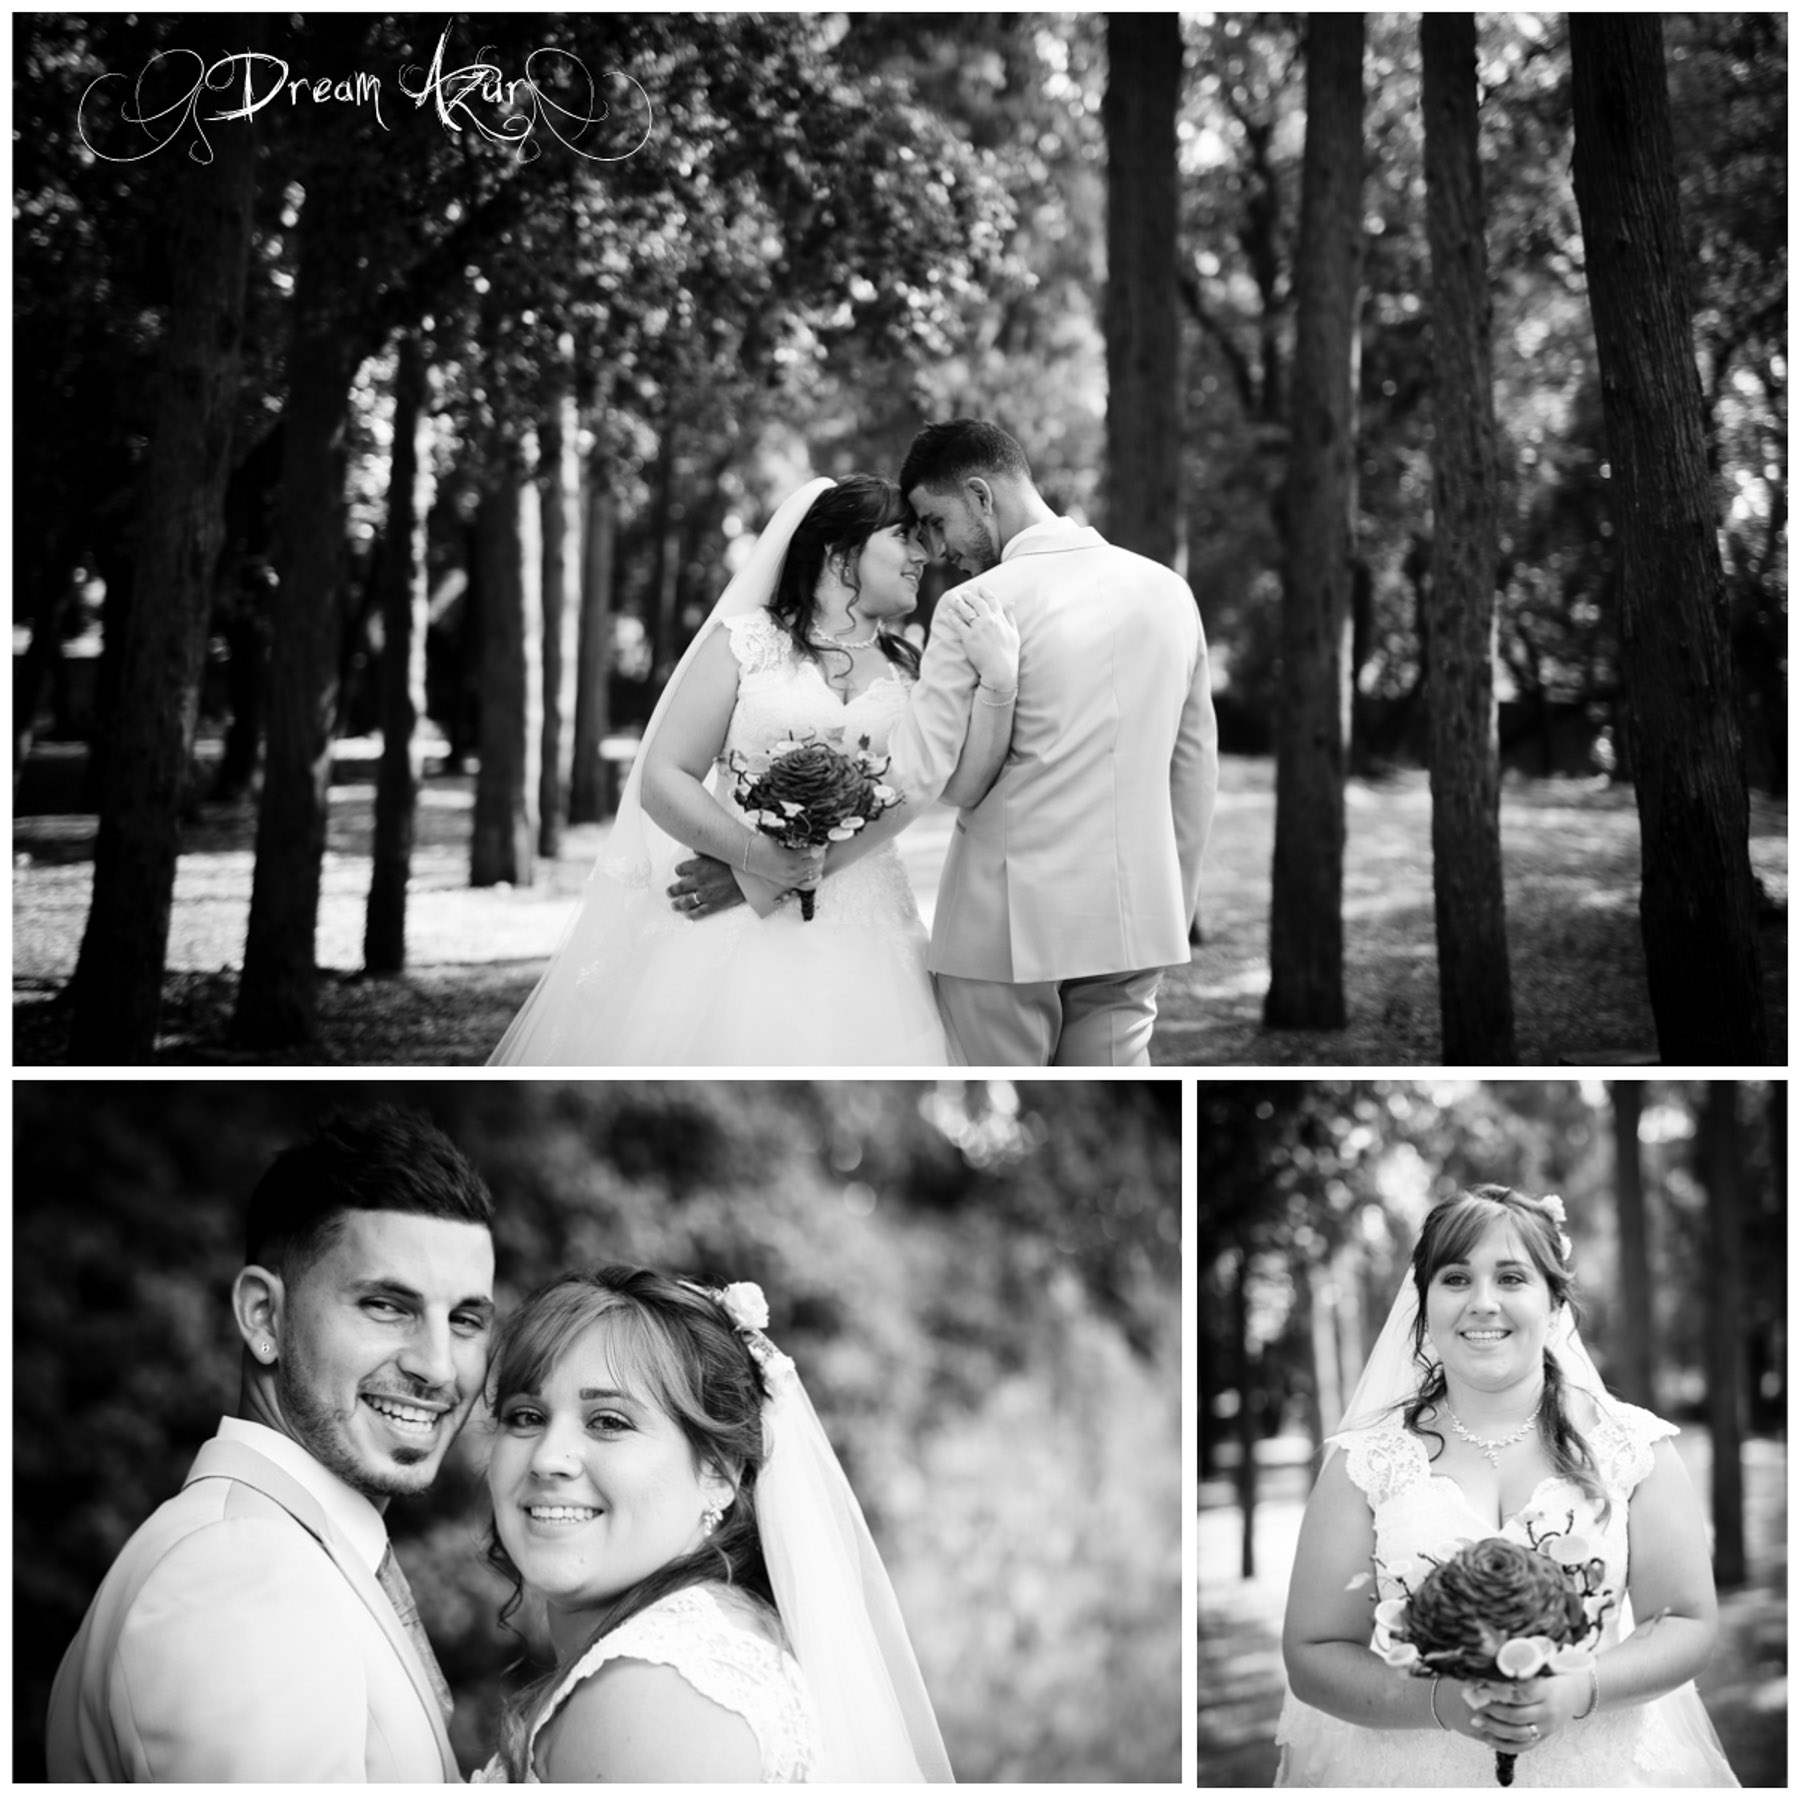 190824COMPO-Mariage-Cindy-et-Anthony-60